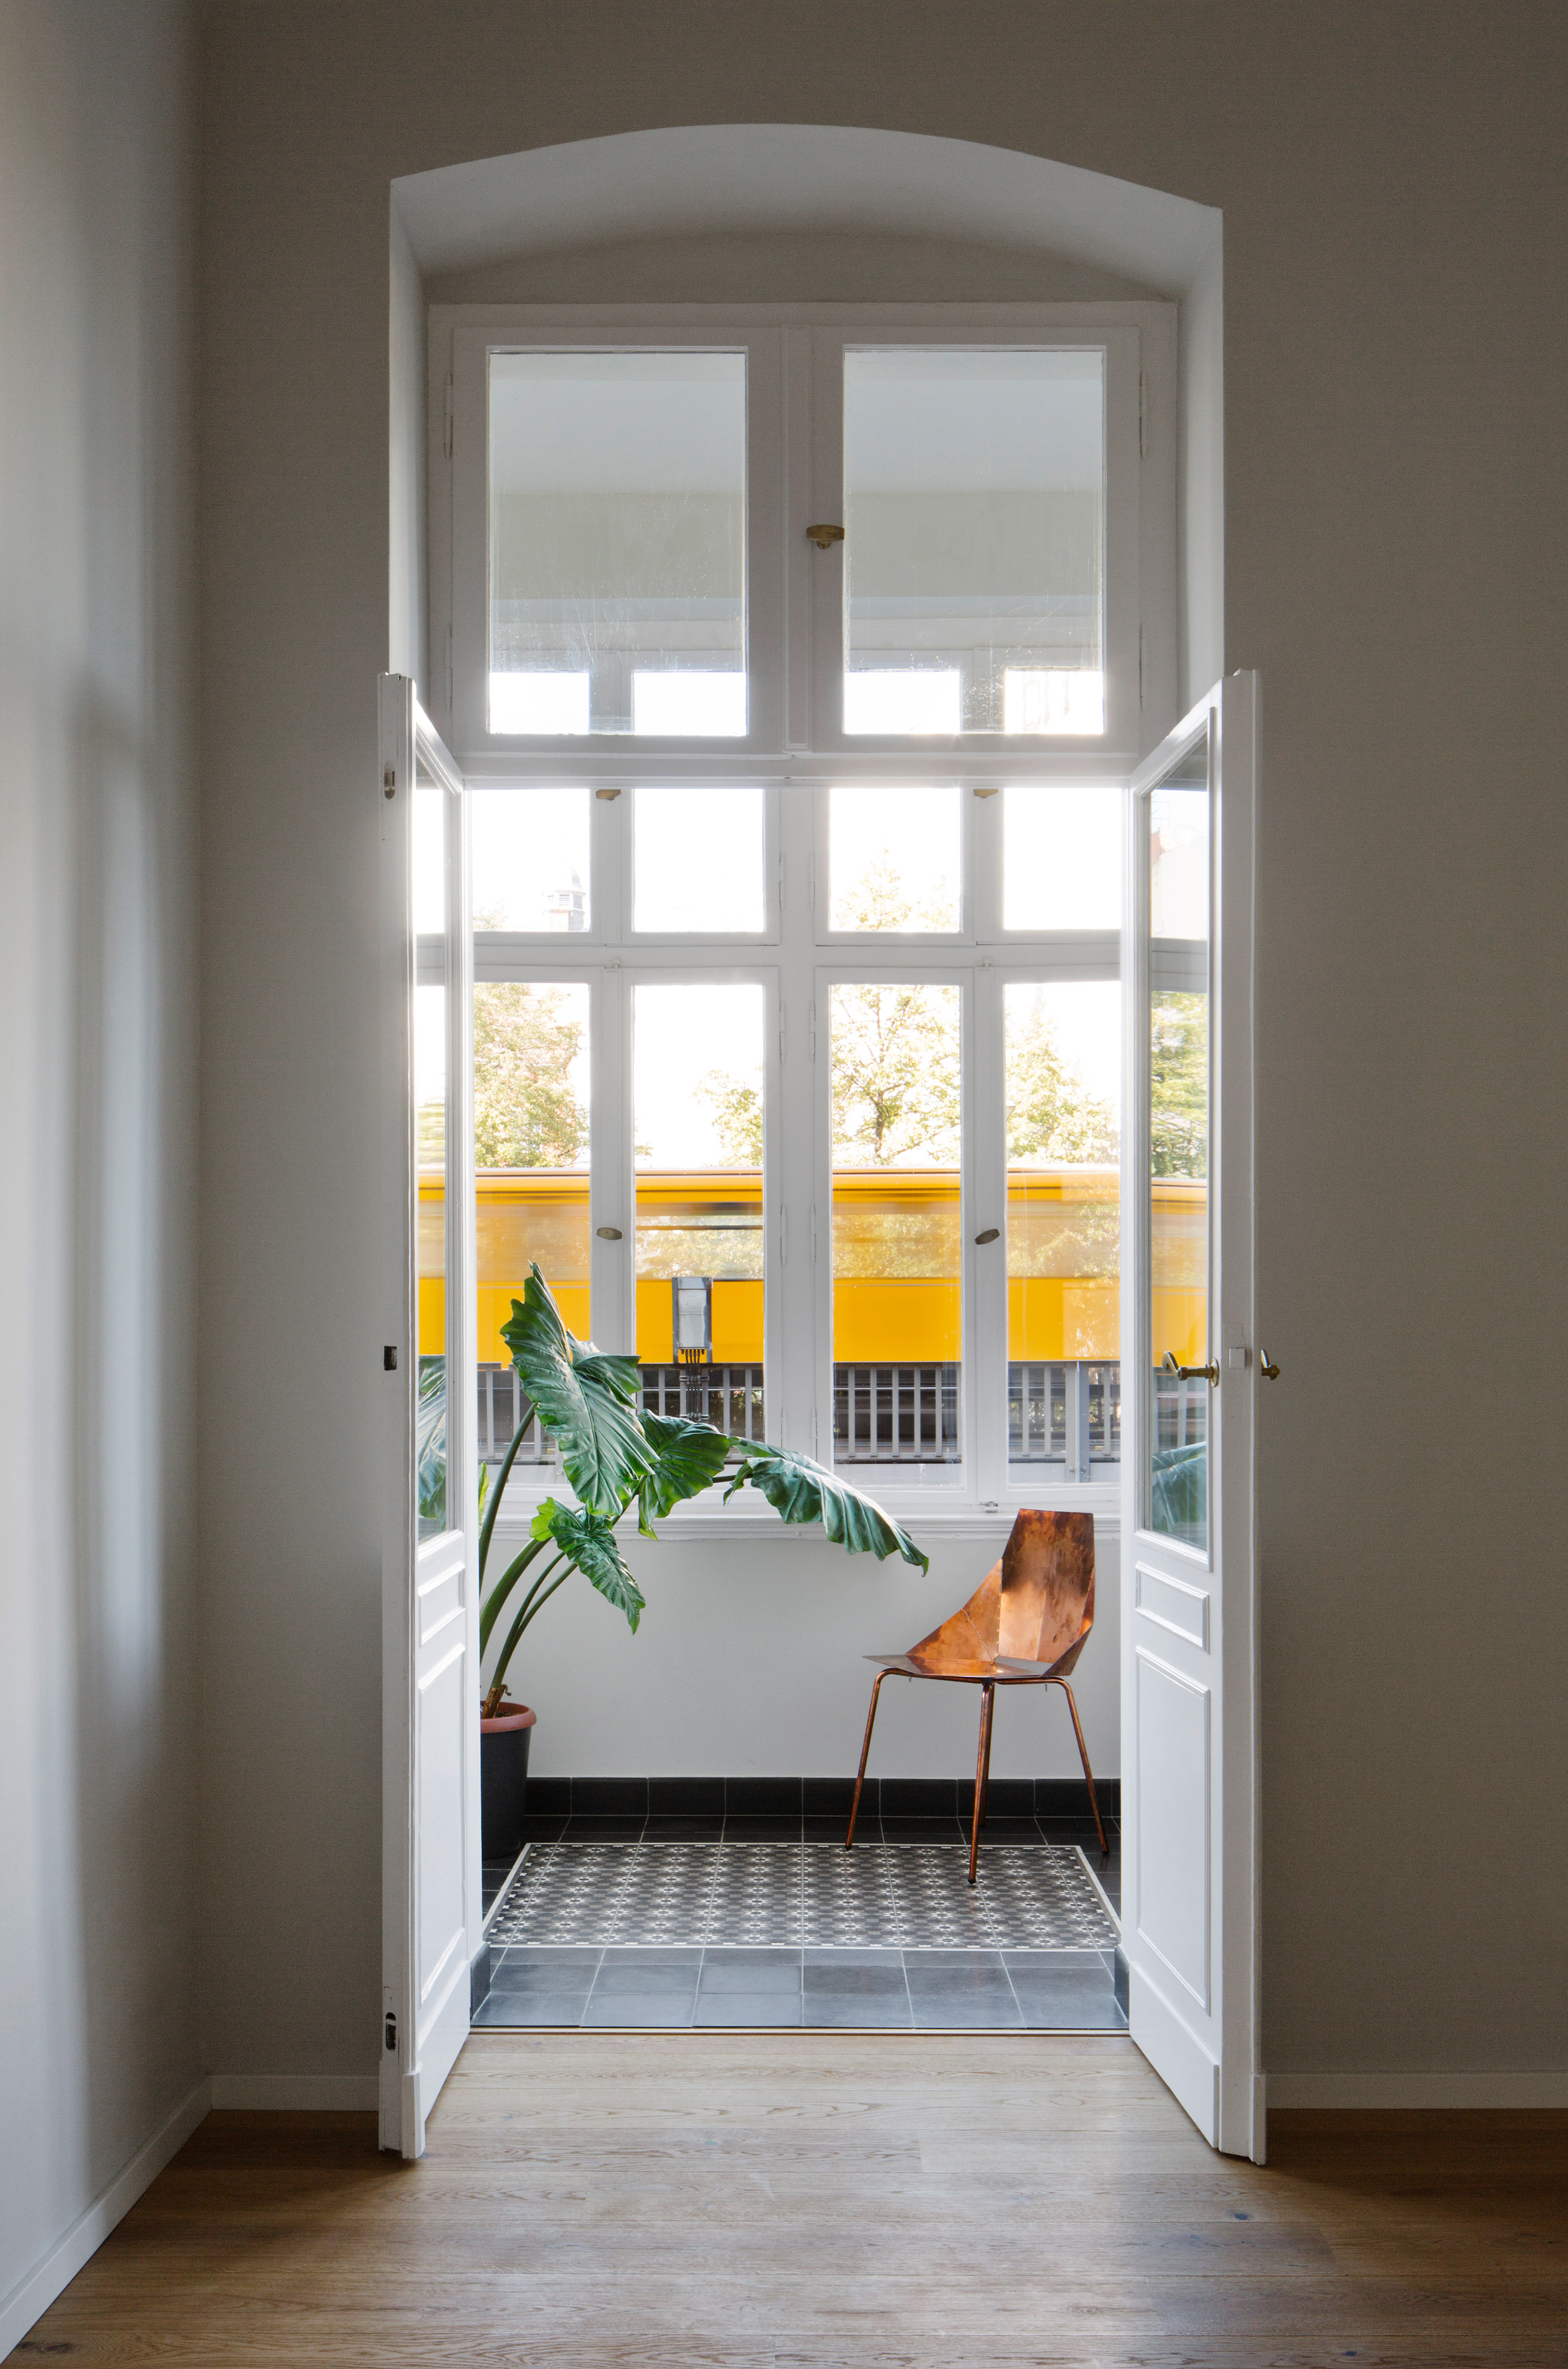 Raum404 redesigns Berlin apartment to double as a gallery